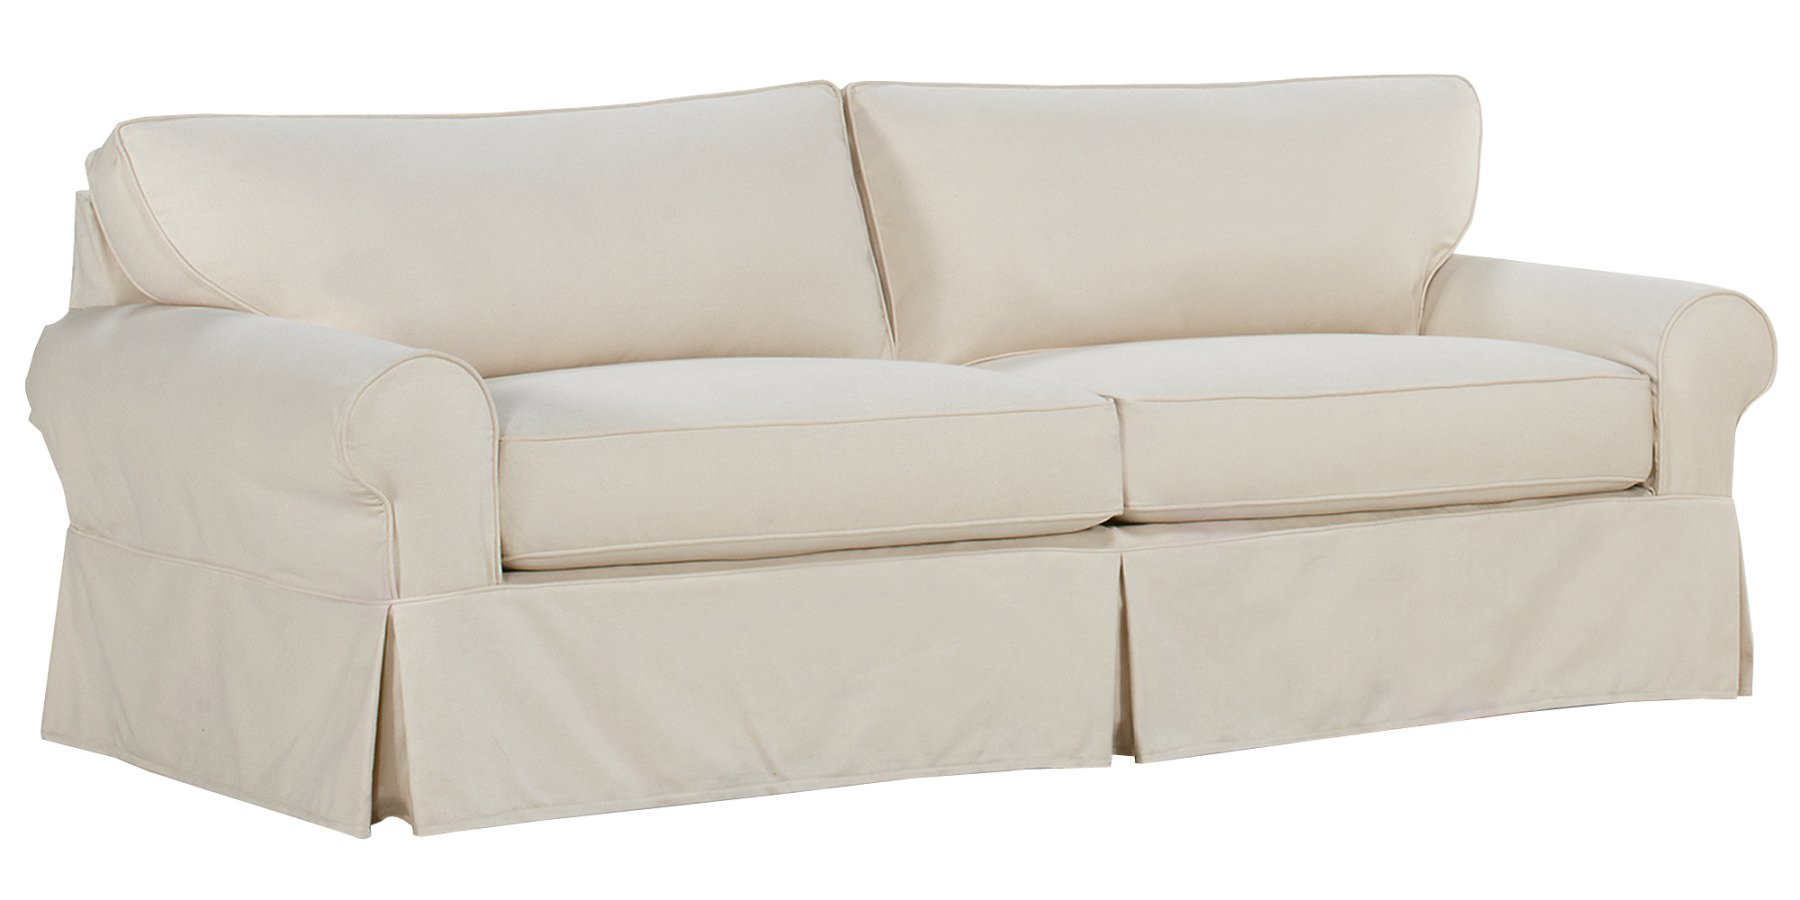 Large Sofas Oversized Sofas And Sofa Slipcover Furniture Online